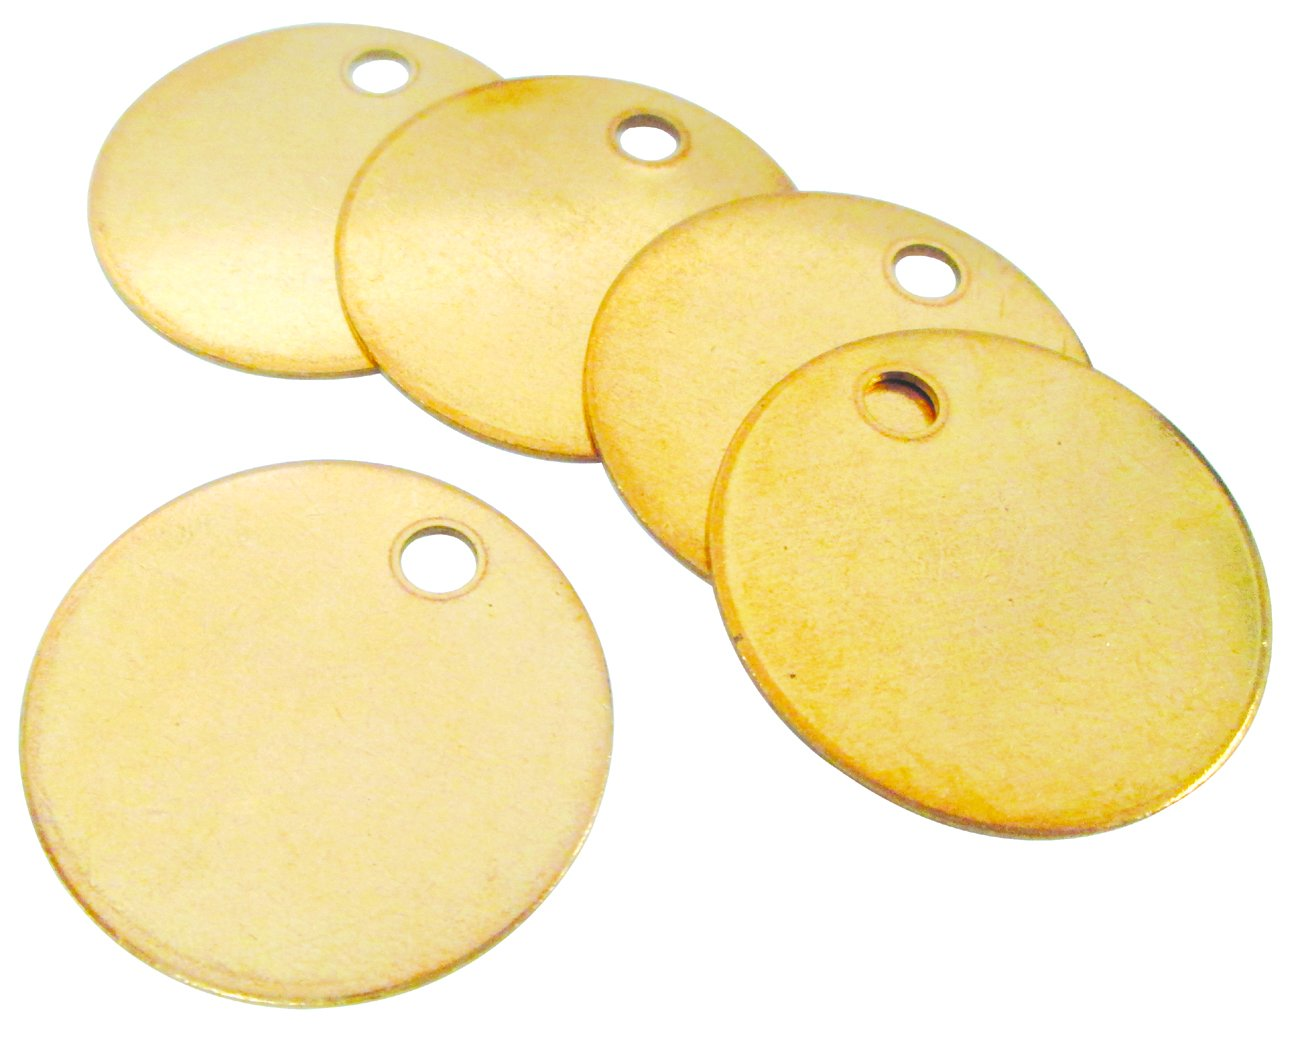 CH Hanson Blank Metal Tags - 1 1/4'' Round with Hole, Brass 18 Gauge, Model 1090B  - 100 Pack by CH Hanson (Image #1)